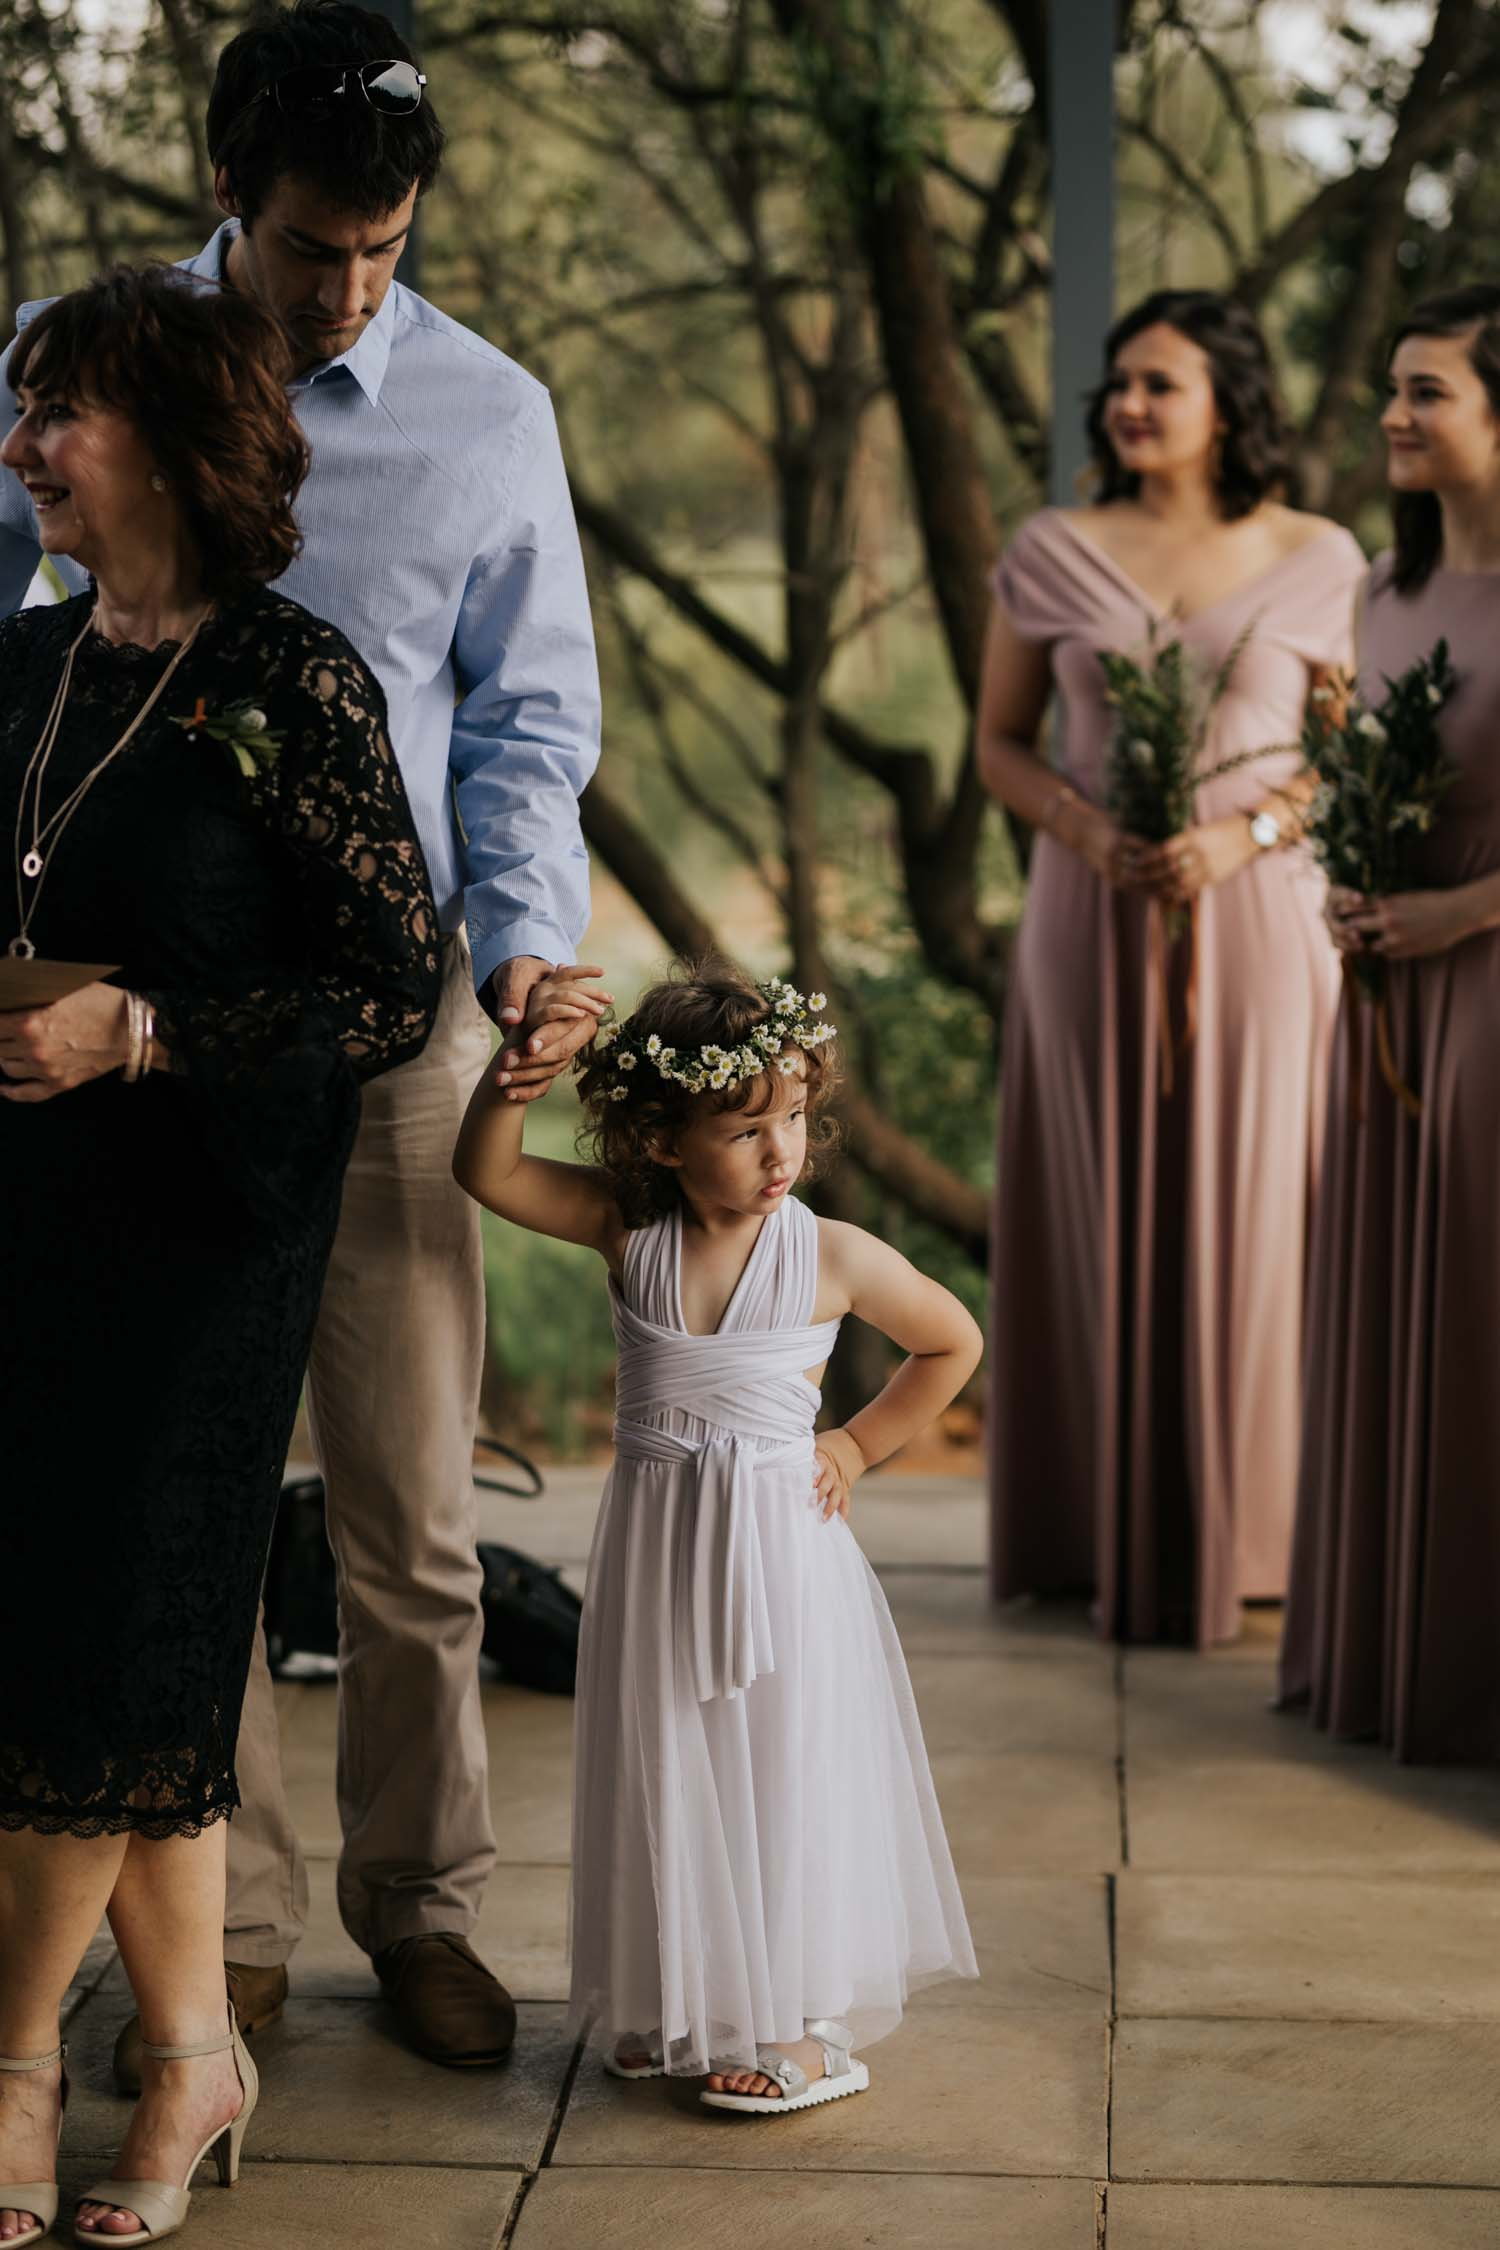 Cute flower girl outfit wearing white wrapped dress, sliver sandals and daisy flower crown